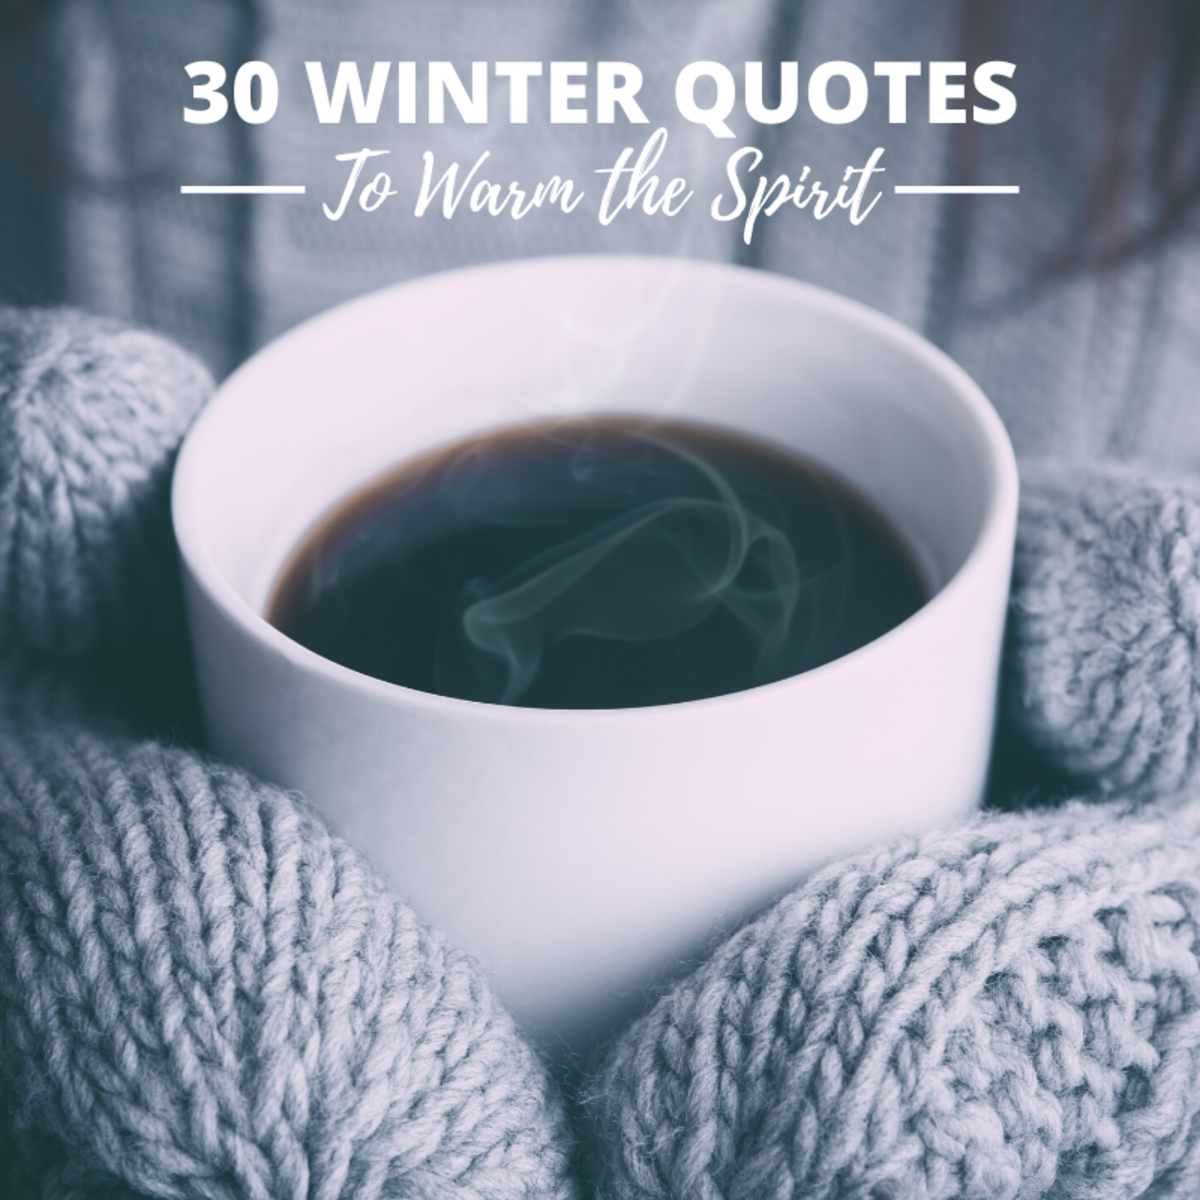 These quotes are all about finding warmth during the cold of winter.